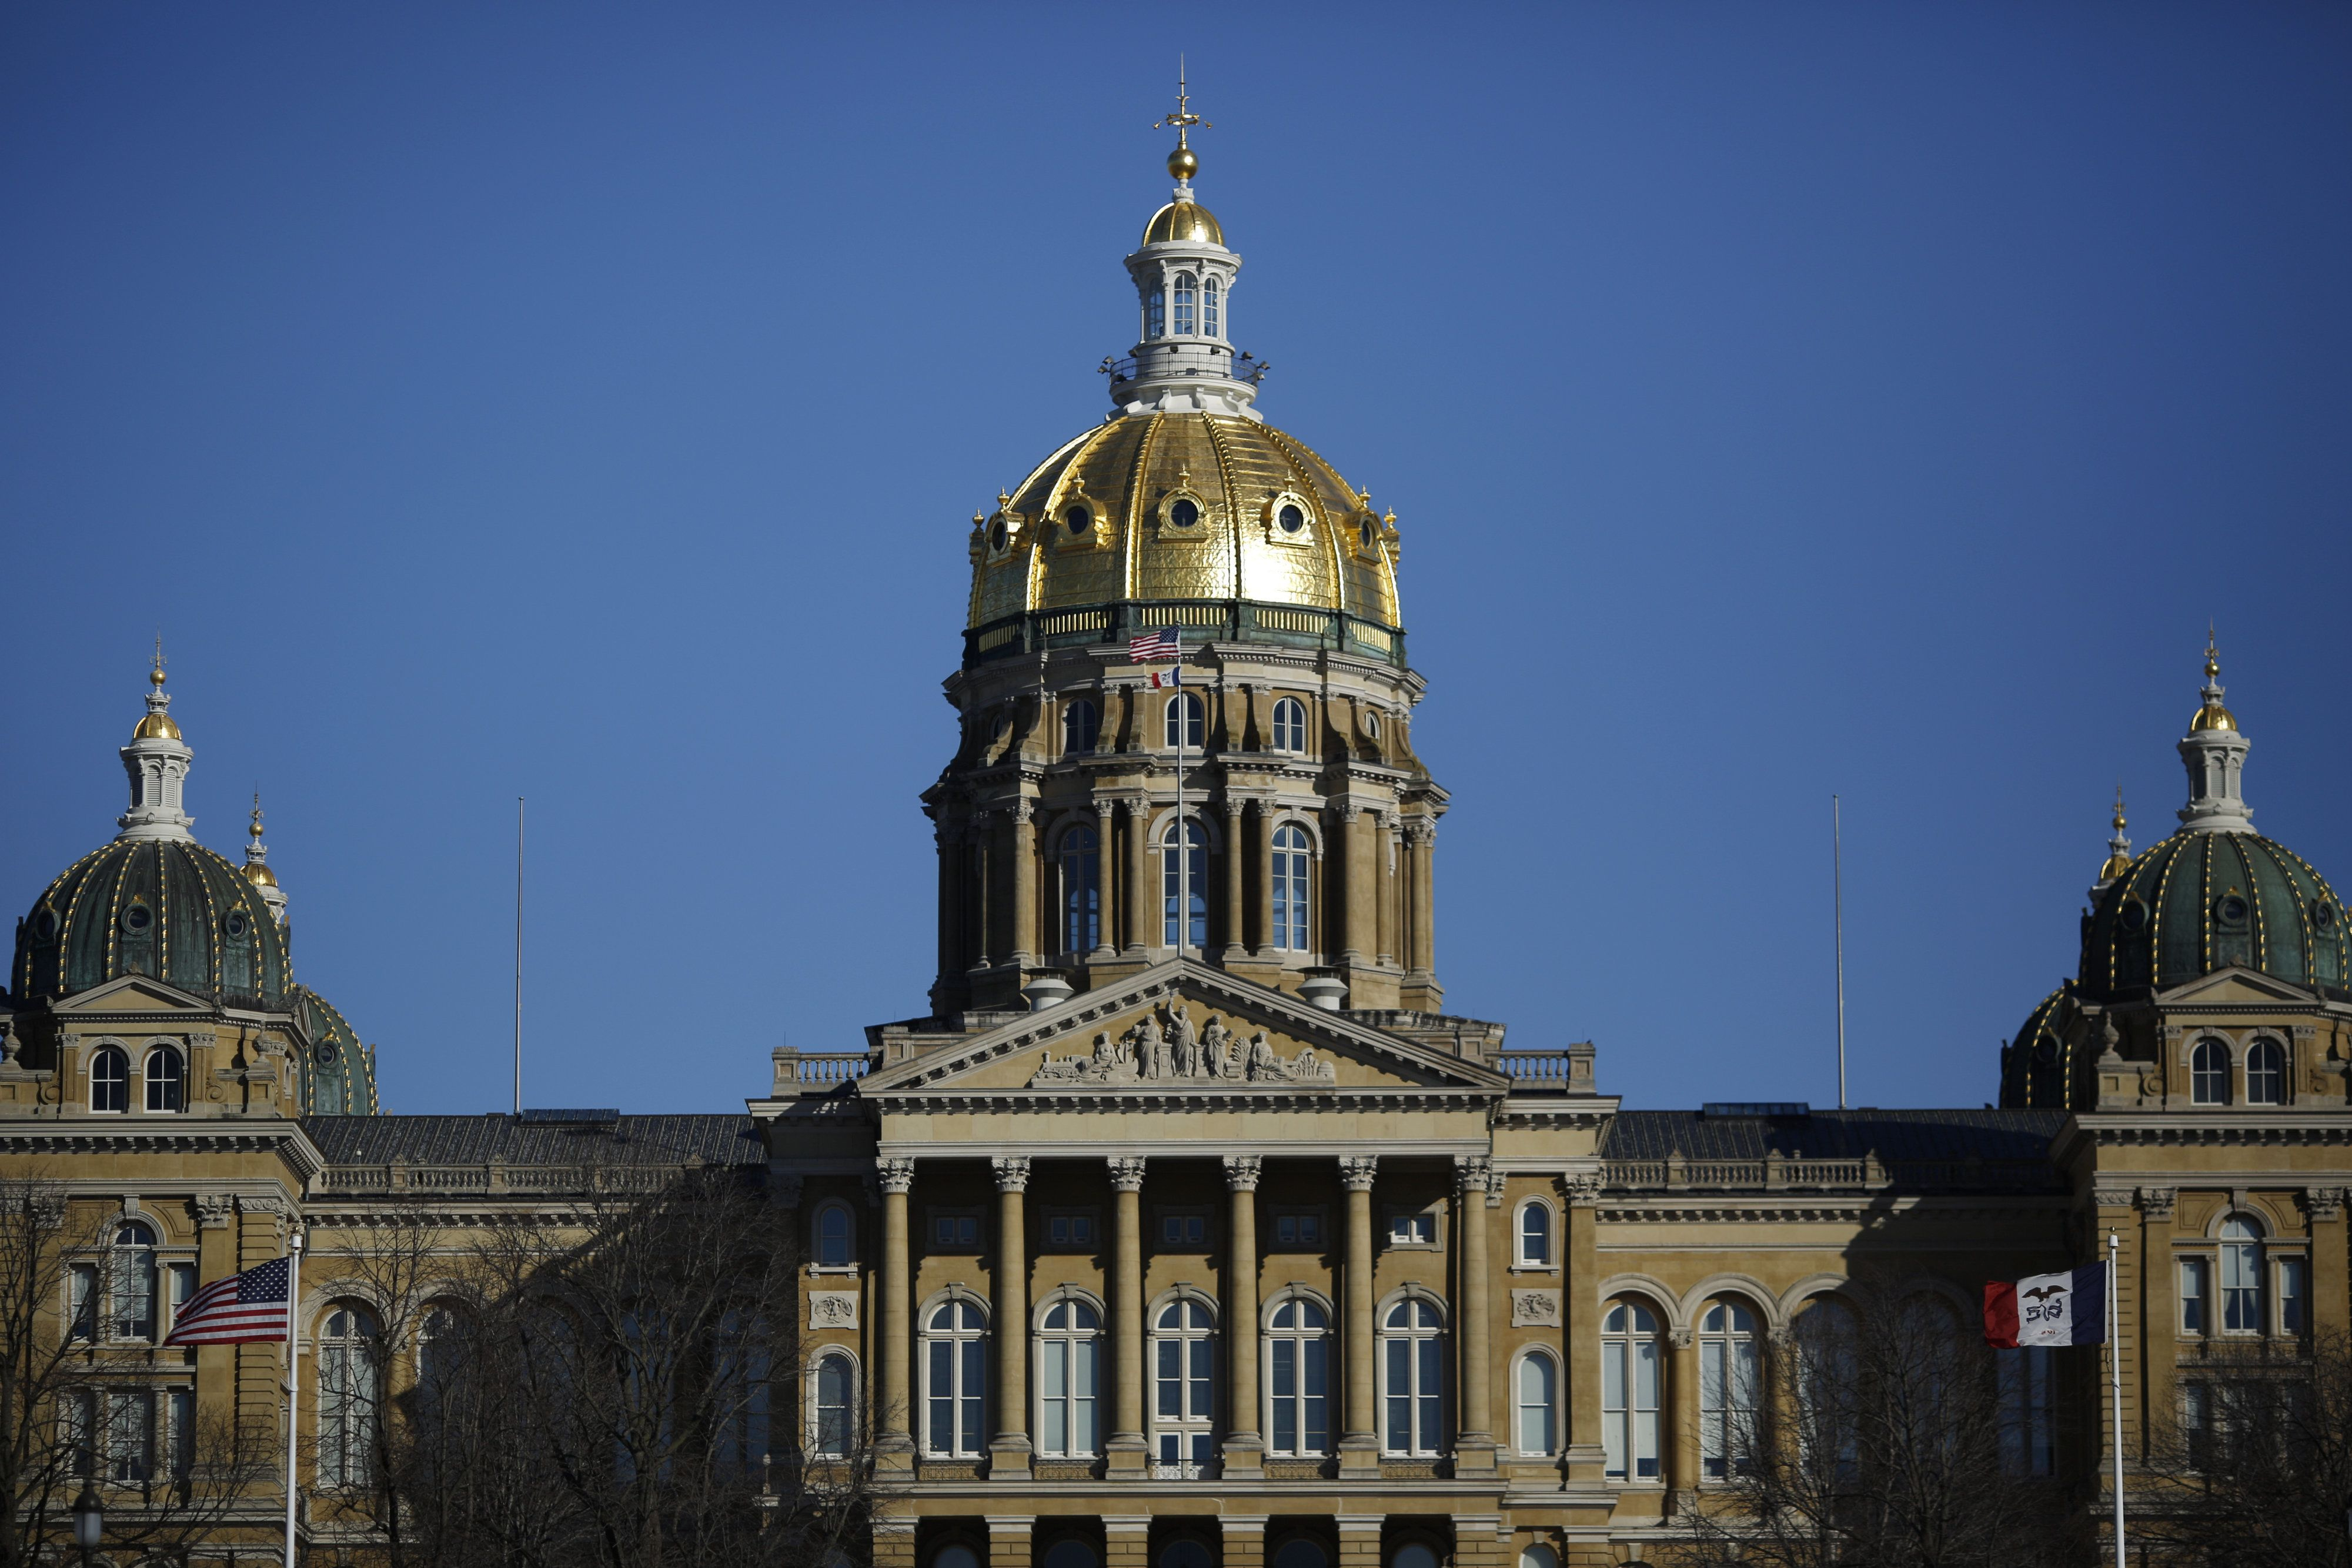 The Iowa State Capitol Building stands in Des Moines, Iowa, U.S., on Friday, Jan. 29, 2016. As the first in the nation Iowa caucuses approaches, where registering your vote isn't as simple as casting a ballot, the state is starting to thrum with nervous energy. Photographer: Luke Sharrett/Bloomberg via Getty Images